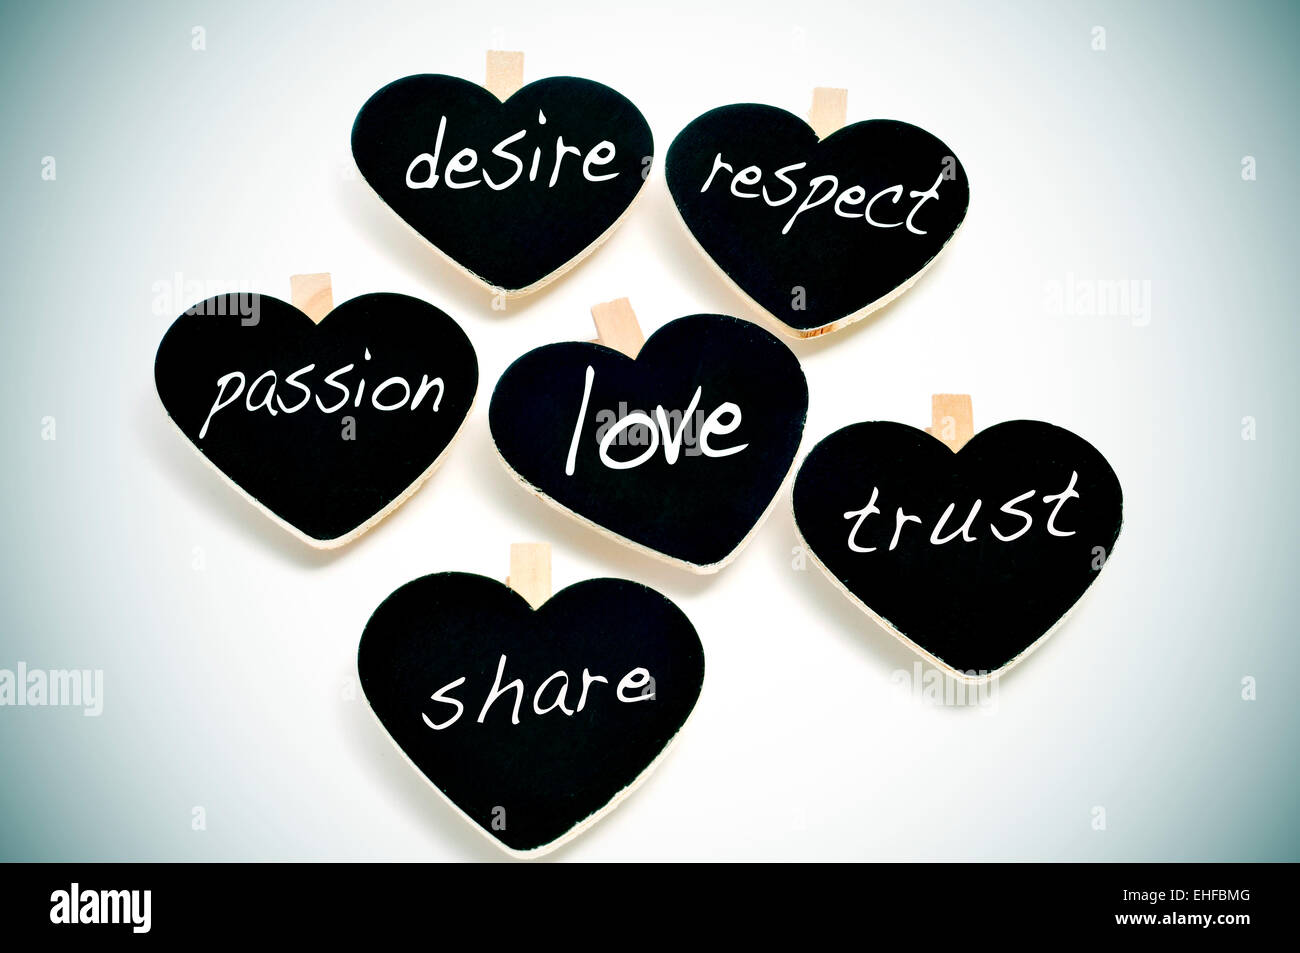 some heart-shaped blackboards with different words written on them related to love concept, such as respect, trust - Stock Image